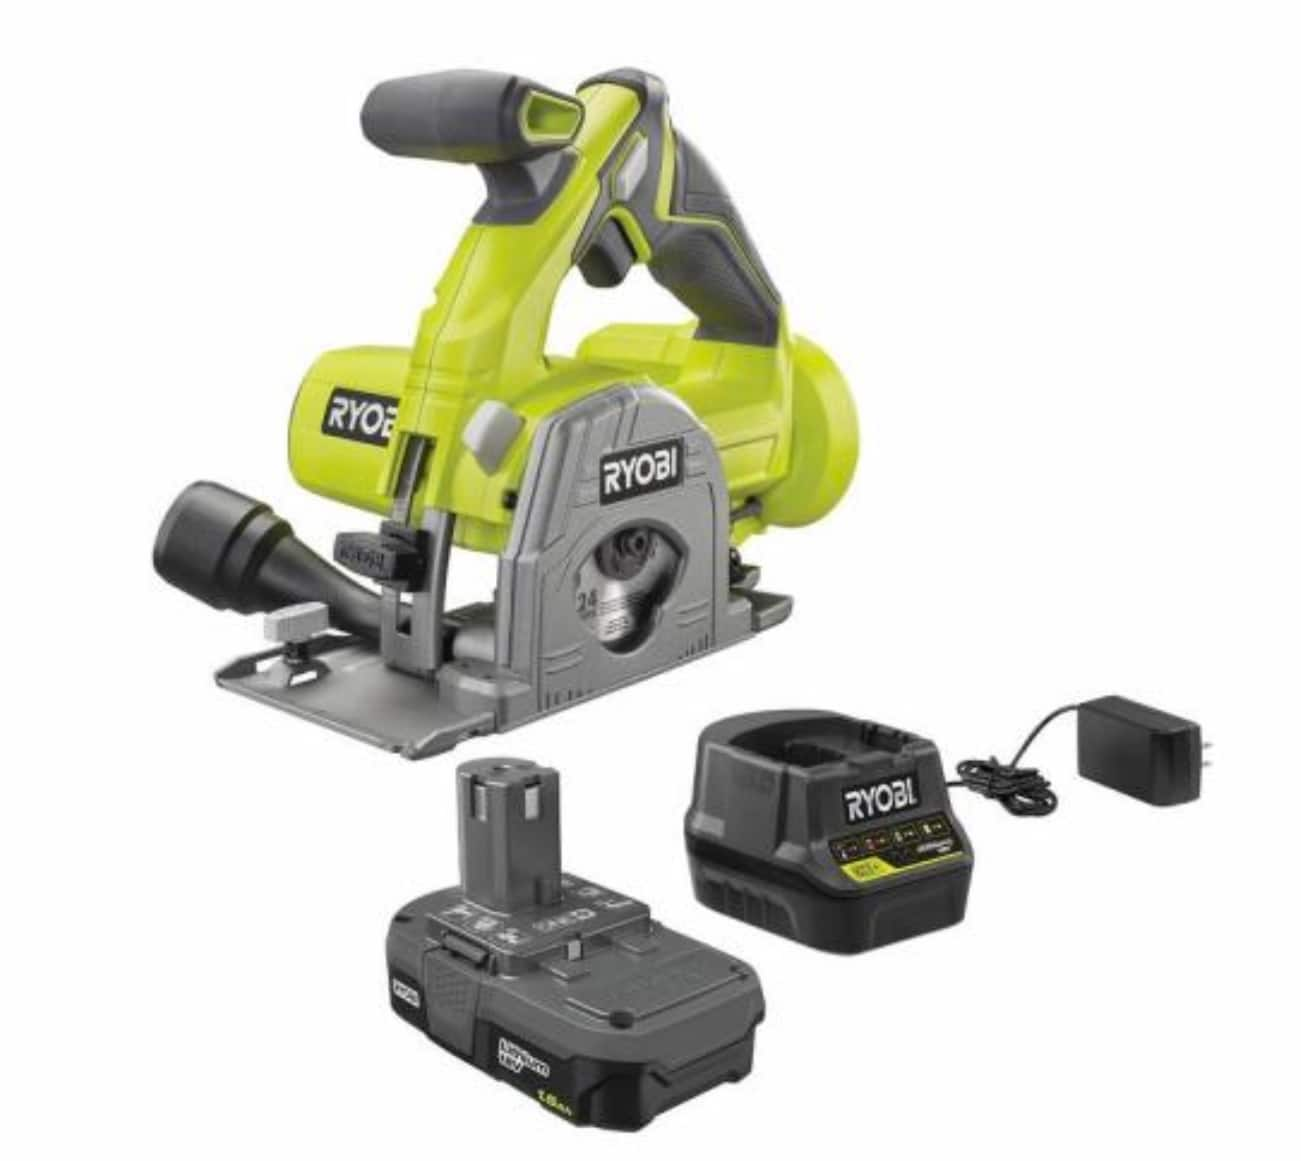 ONE+ 18V Ryobi Cordless Multi-Material Saw Kit with (1) 1.5 Ah Battery and Charger($94.97 + Free Shipping)